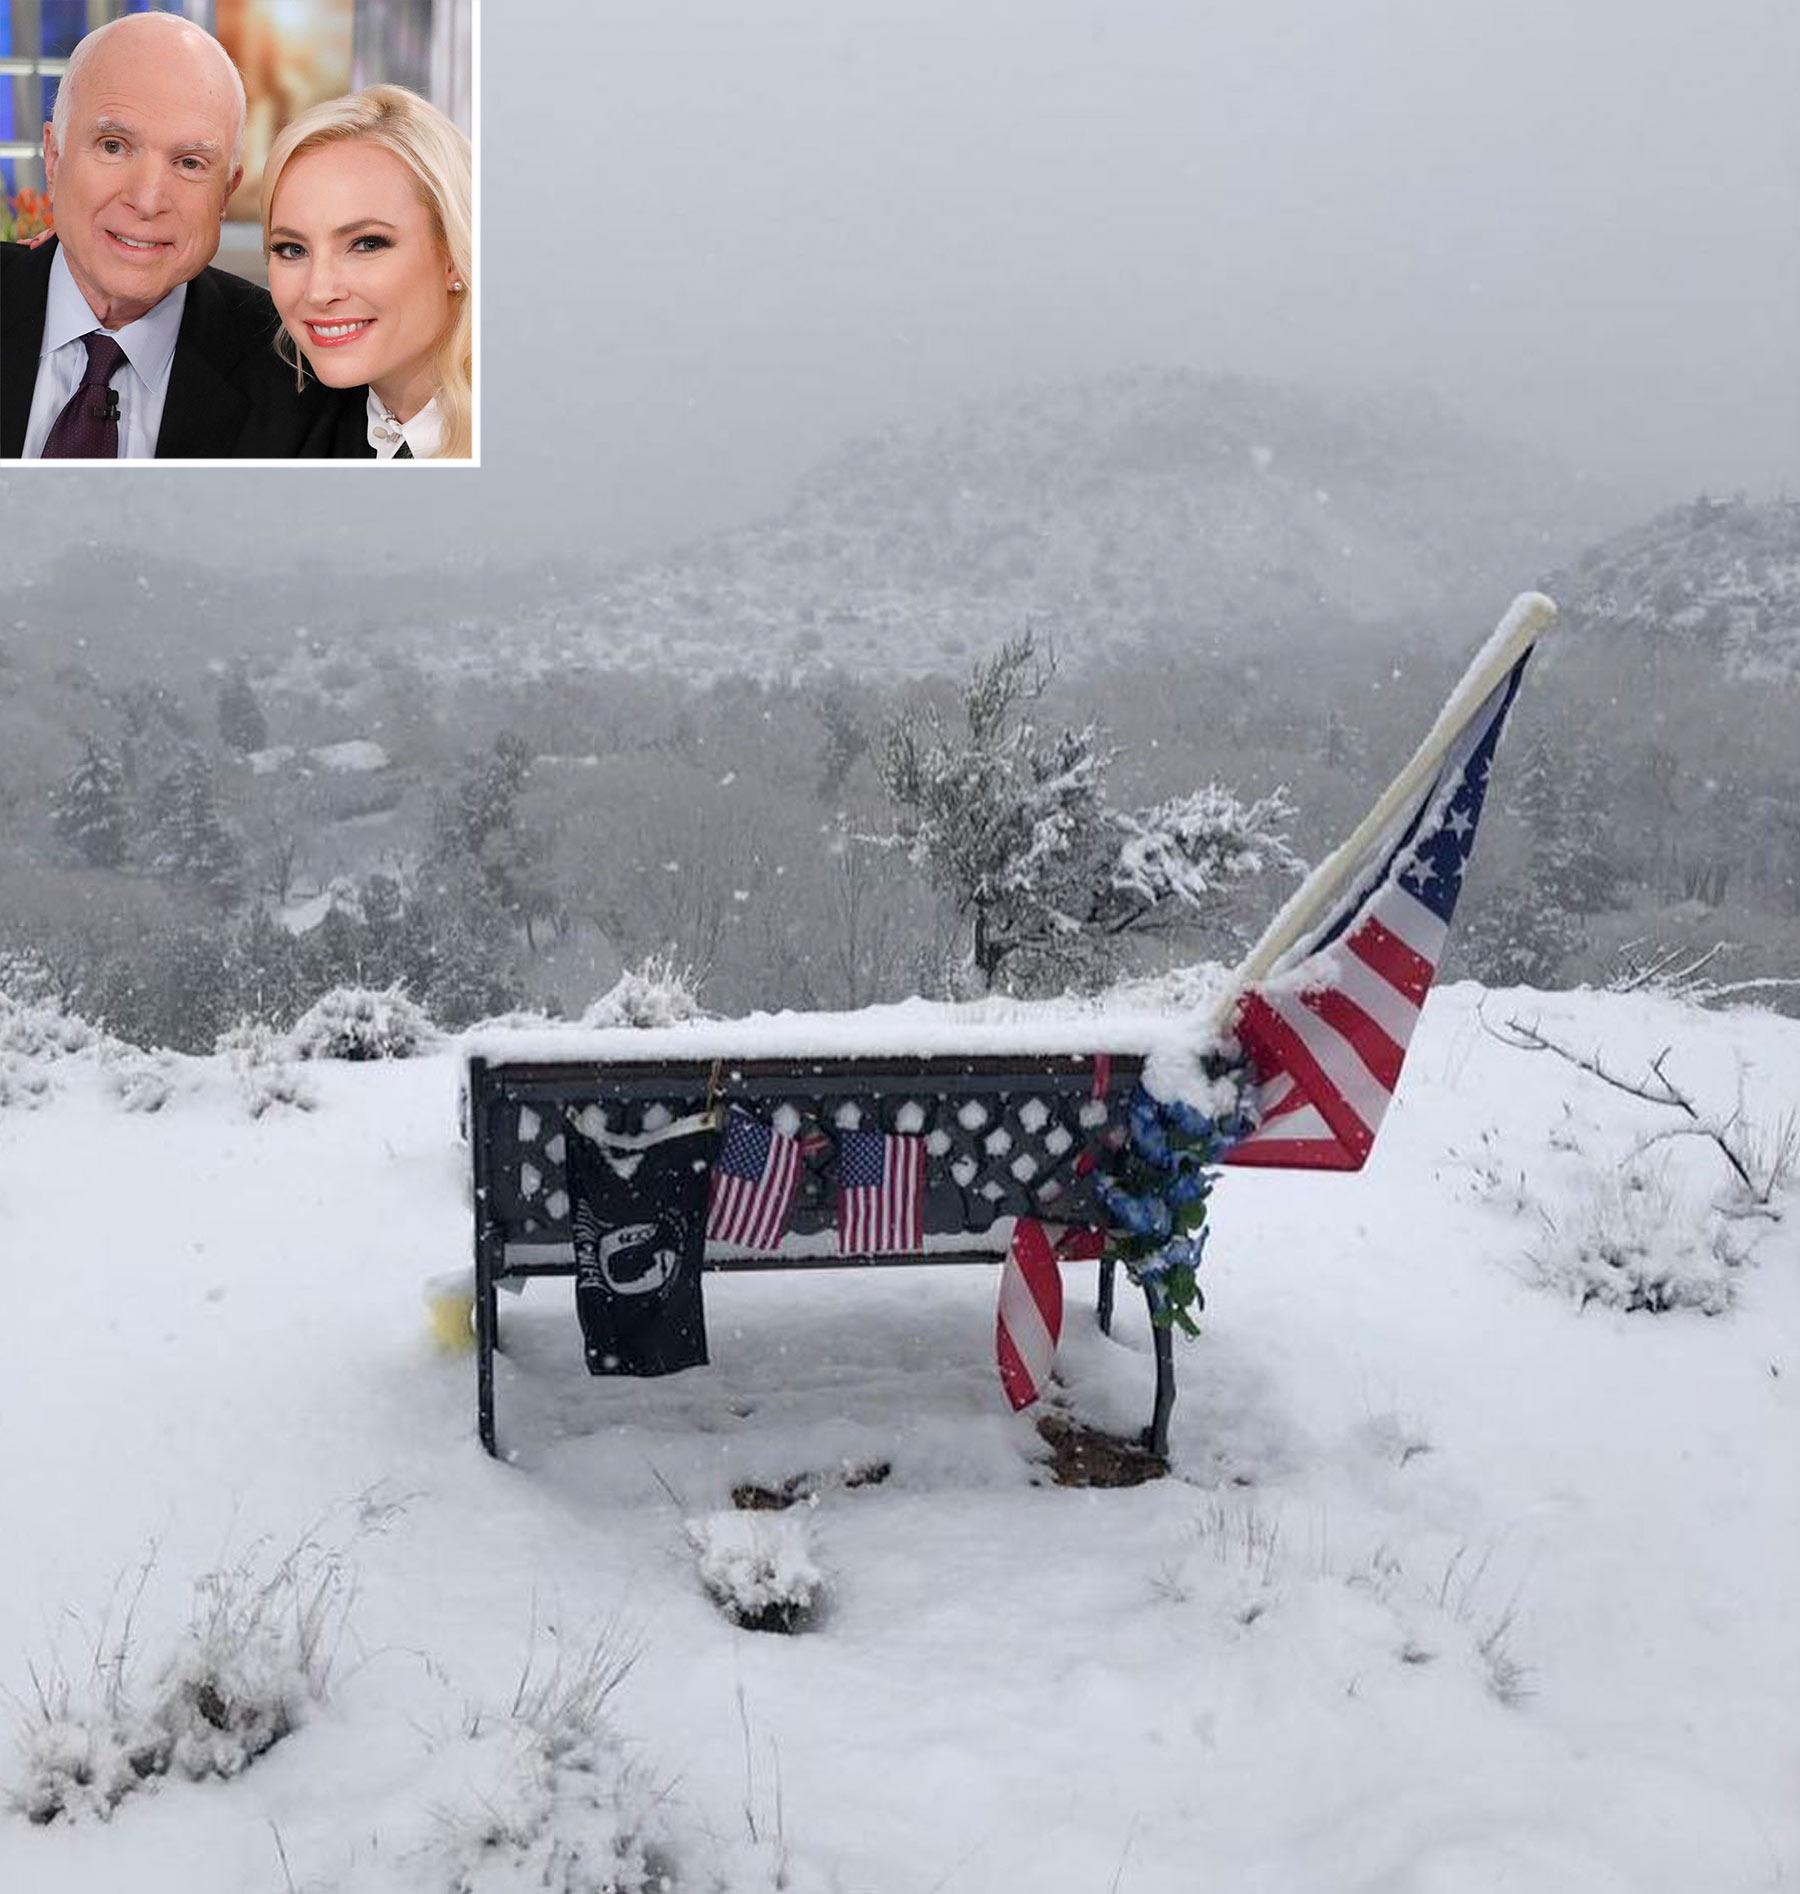 Meghan McCain Visits Late Dad John's Snowy Memorial On New